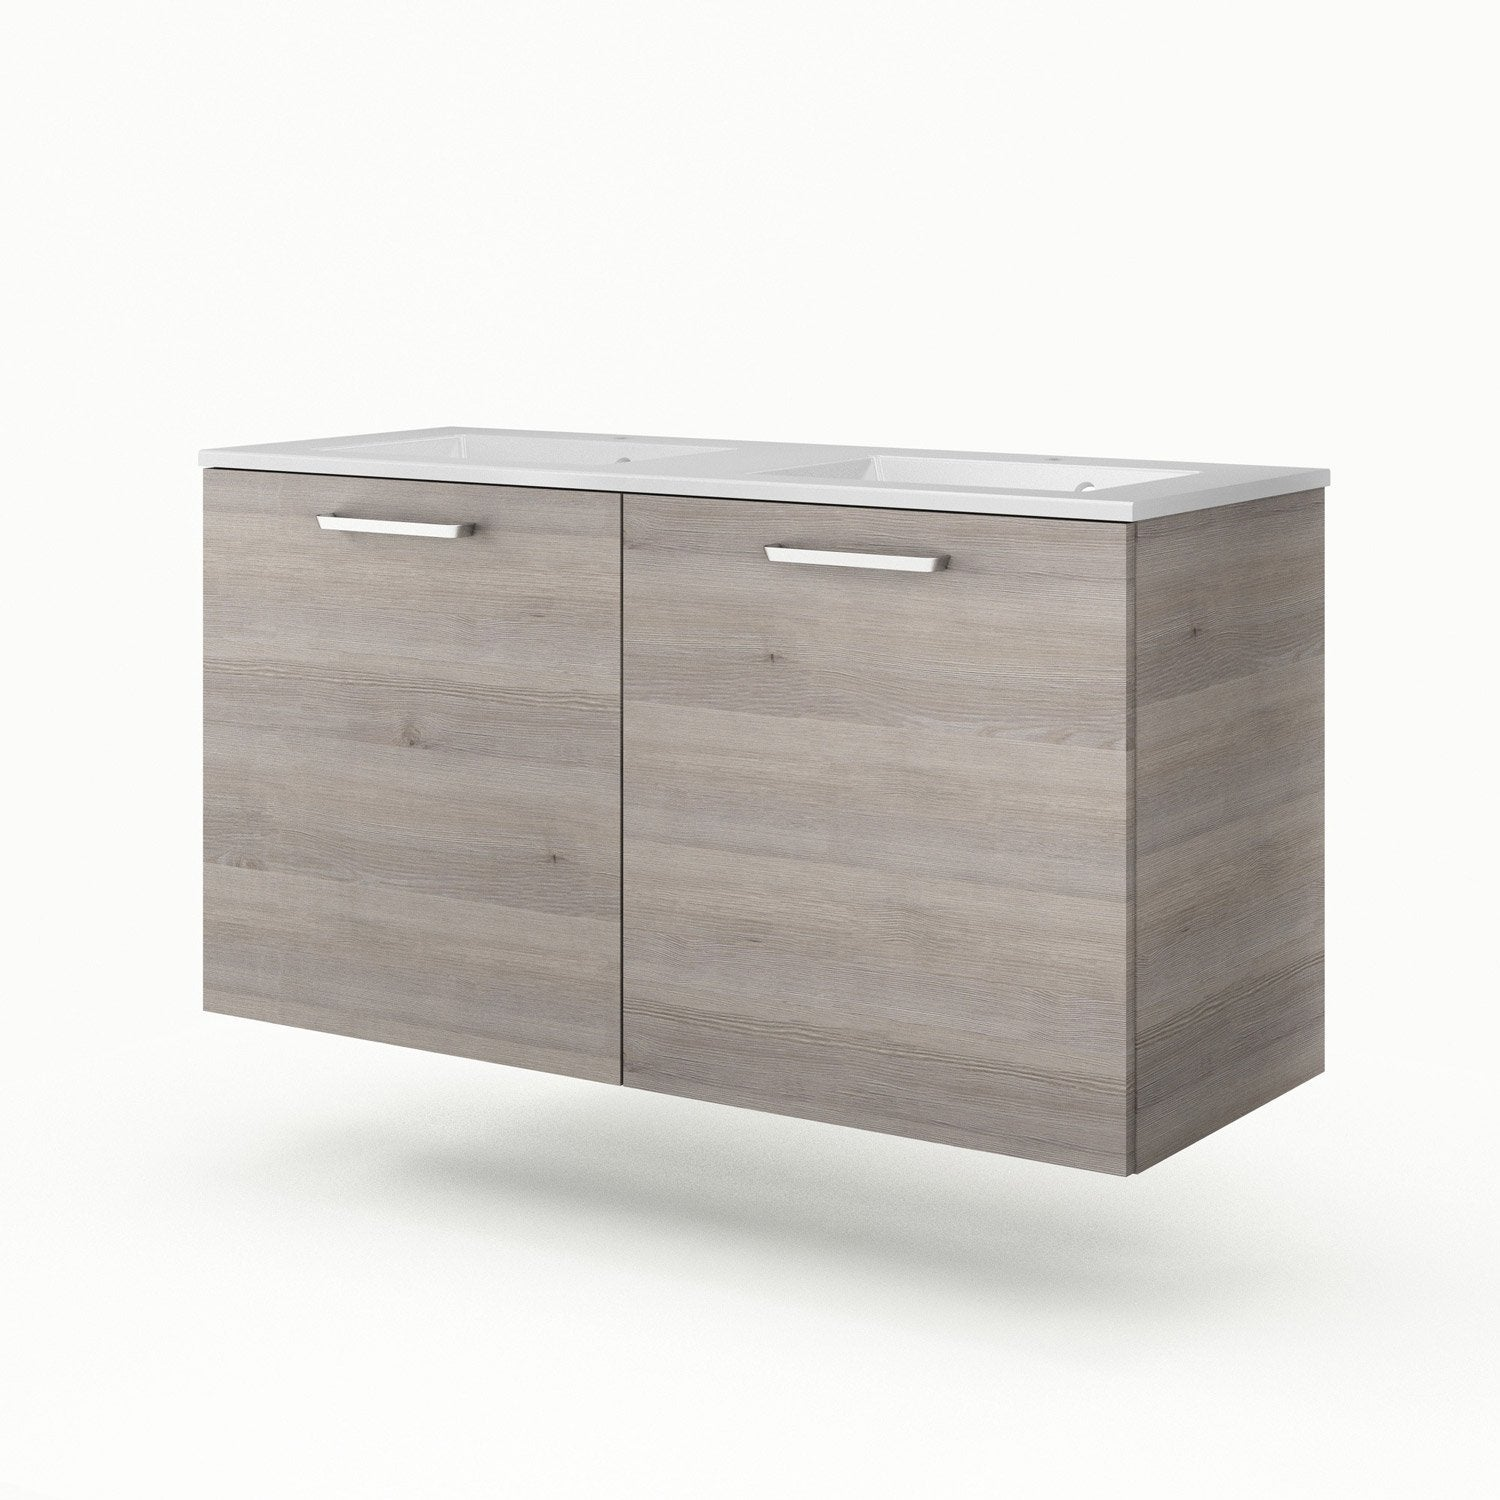 Meuble vasque 121 cm neo line leroy merlin - Meuble vasque leroy merlin ...